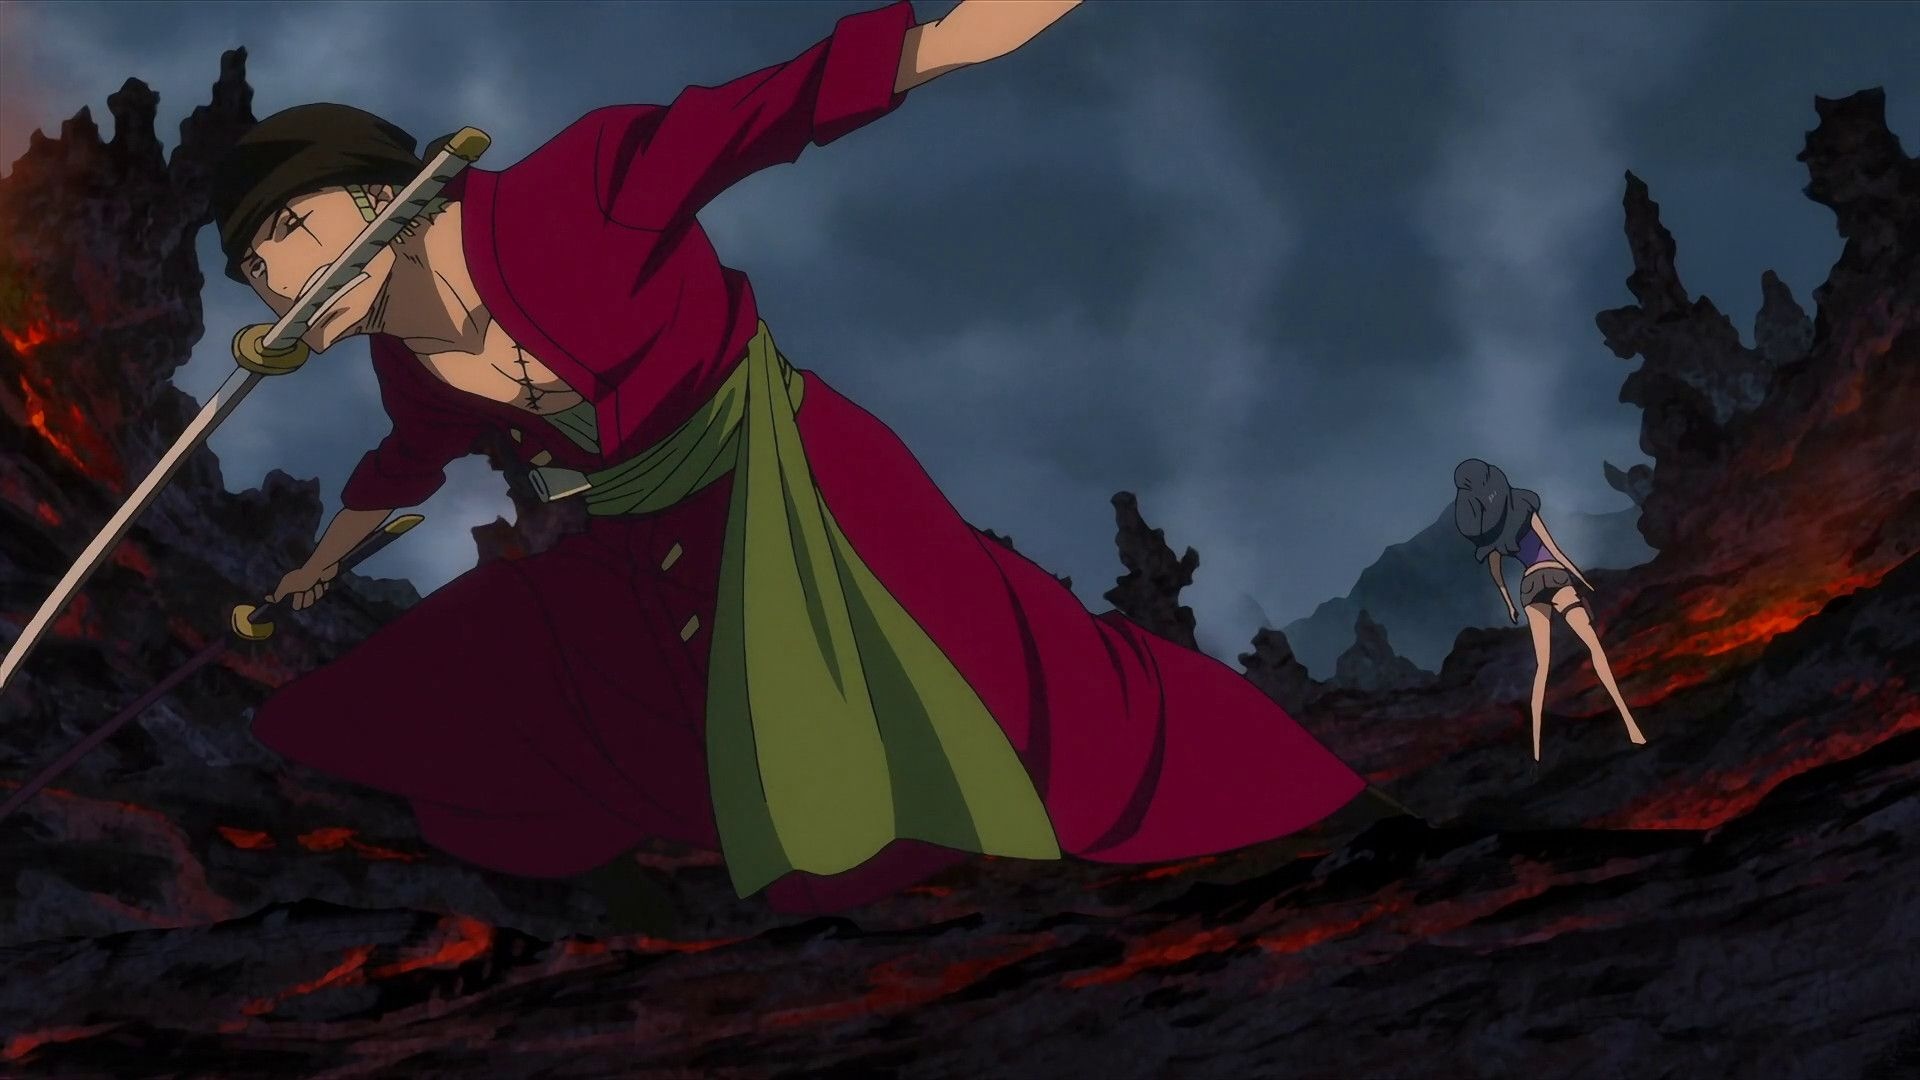 1920x1080 One Piece New World Zoro Full Hd Pics Wallpapers